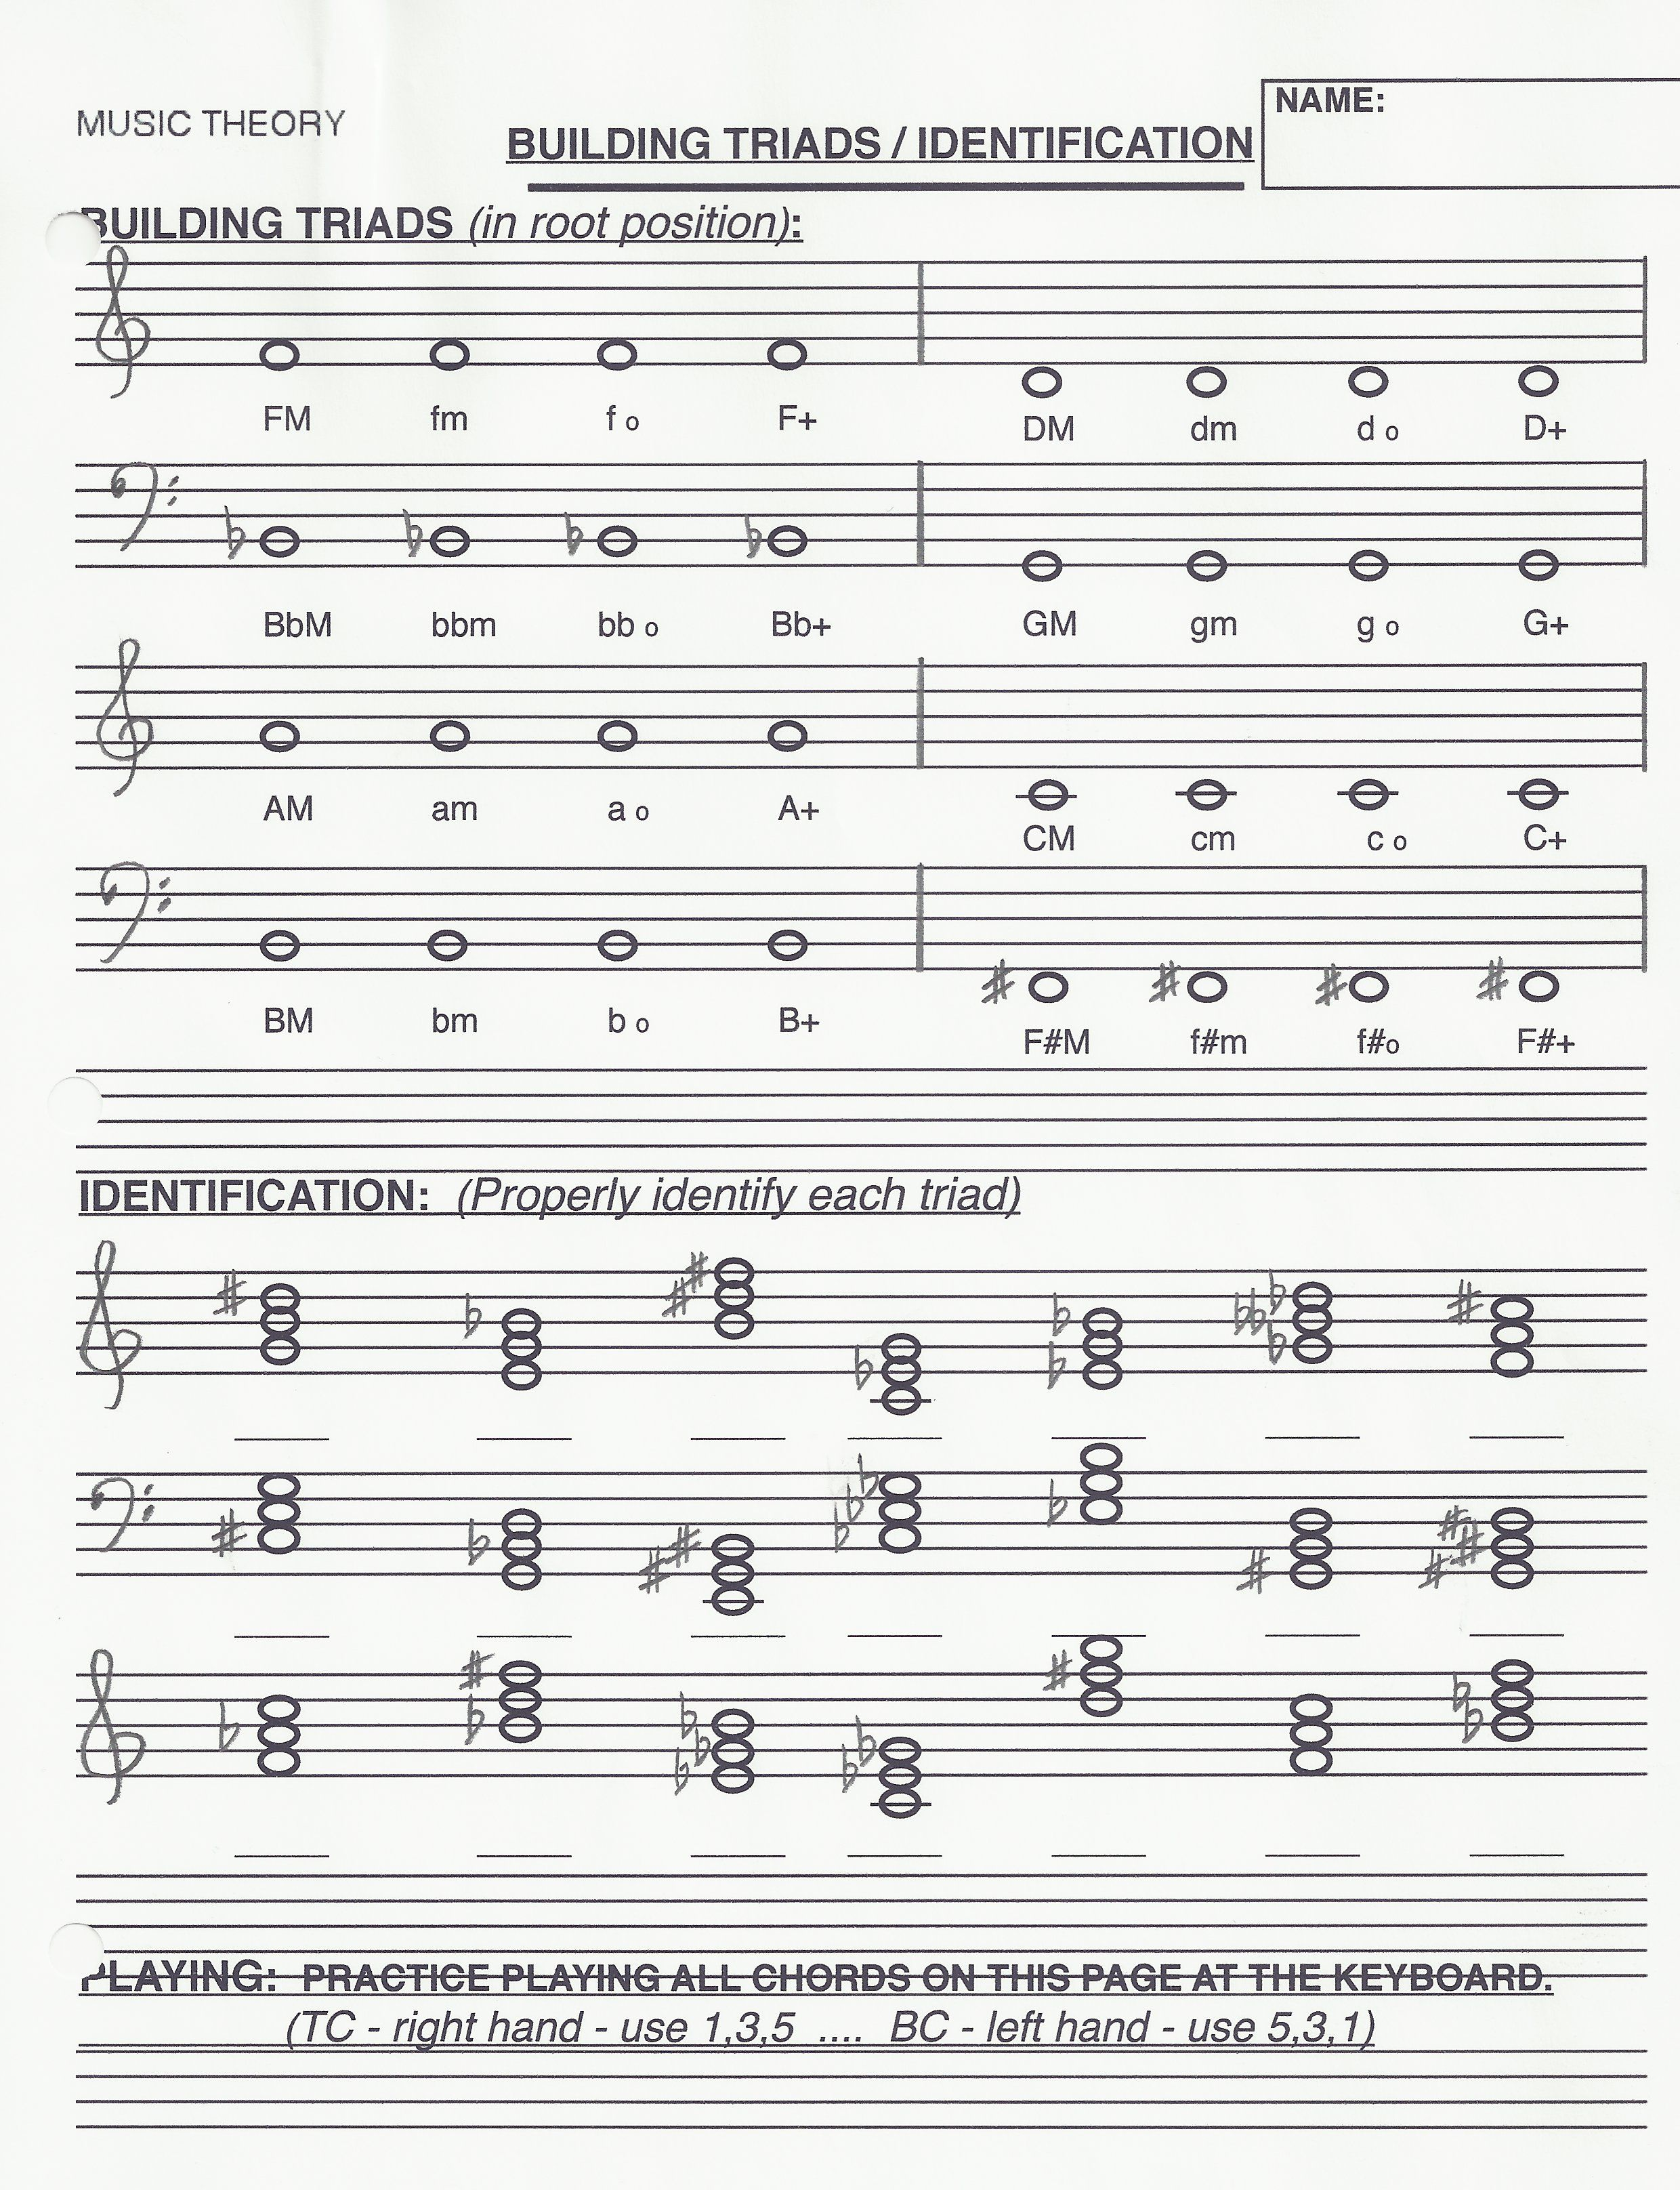 Worksheets Basic Music Theory Worksheets triad building music theory worksheets pinterest building